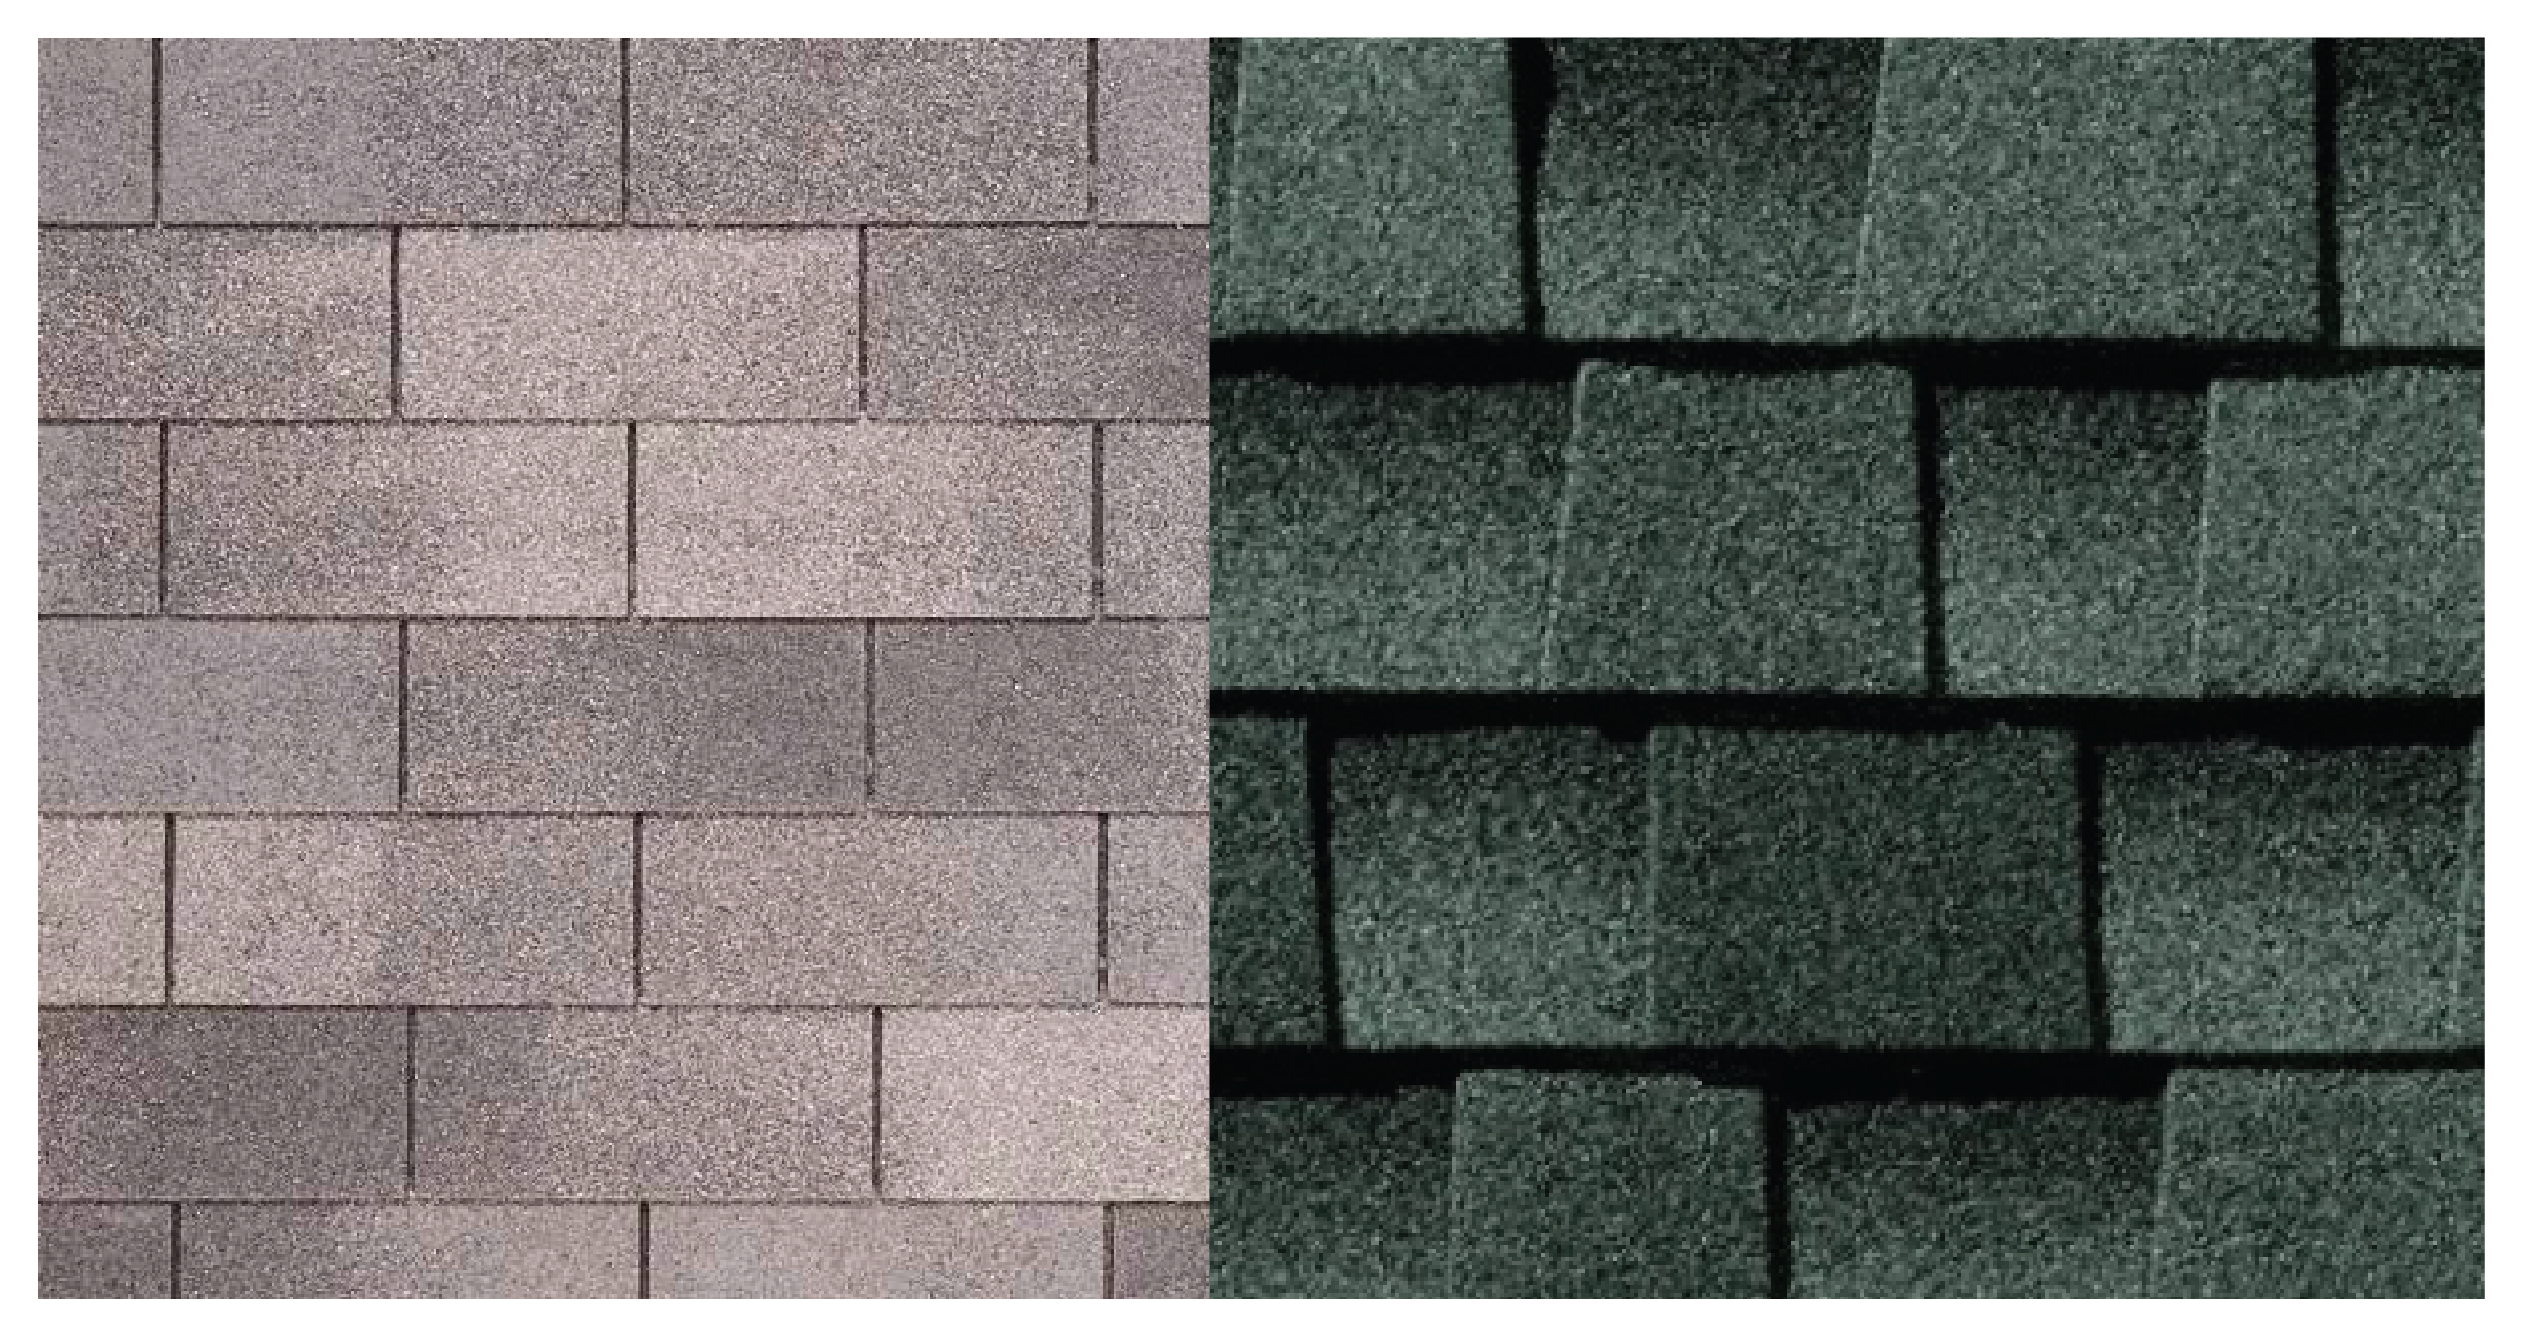 3 Tab Shingles 3 Tab White Shingle Roof Shingles Linkedlifescom